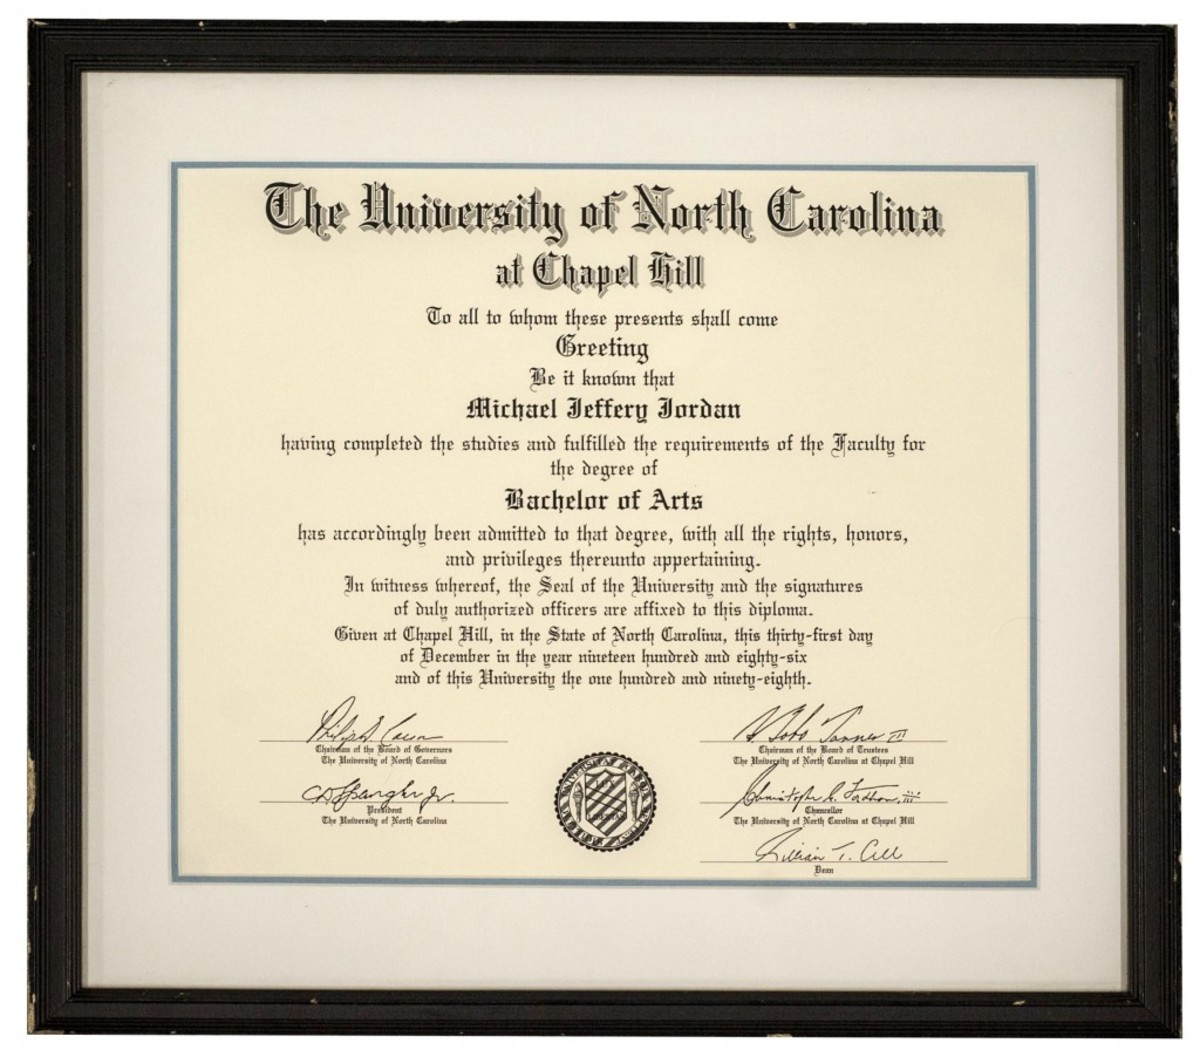 Michael Jordan's 1986 University of North Carolina diploma is one of the basketball superstar's historic college-era items that will be displayed at the Long Beach Coin, Currency, Stamp & Sports Collectible Expo, January 30 - February 1, 2014. (Photos courtesy of Goldin Auctions.)